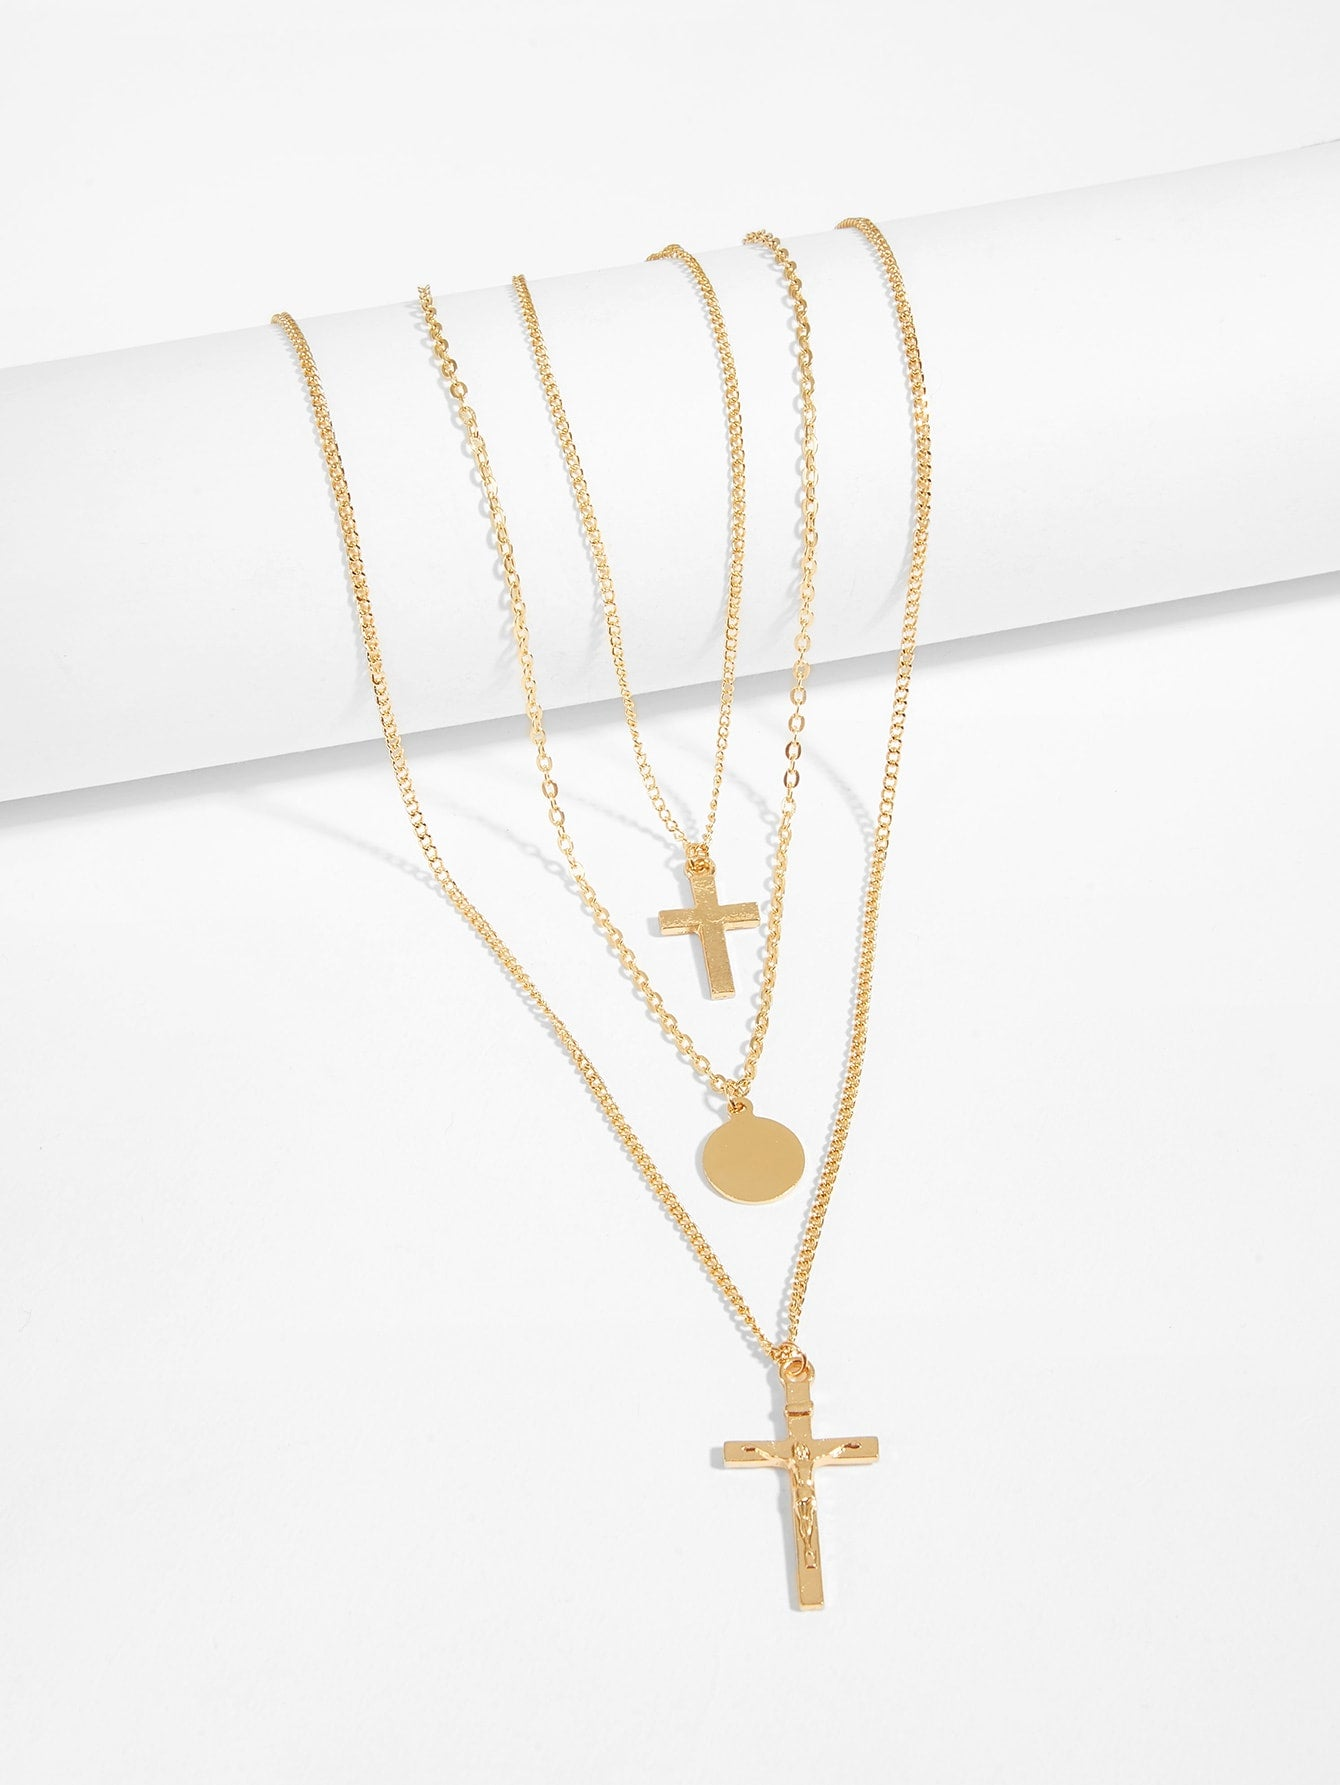 Triple Layered Golden Cross & Disc Pendant Chain Necklace 1pc